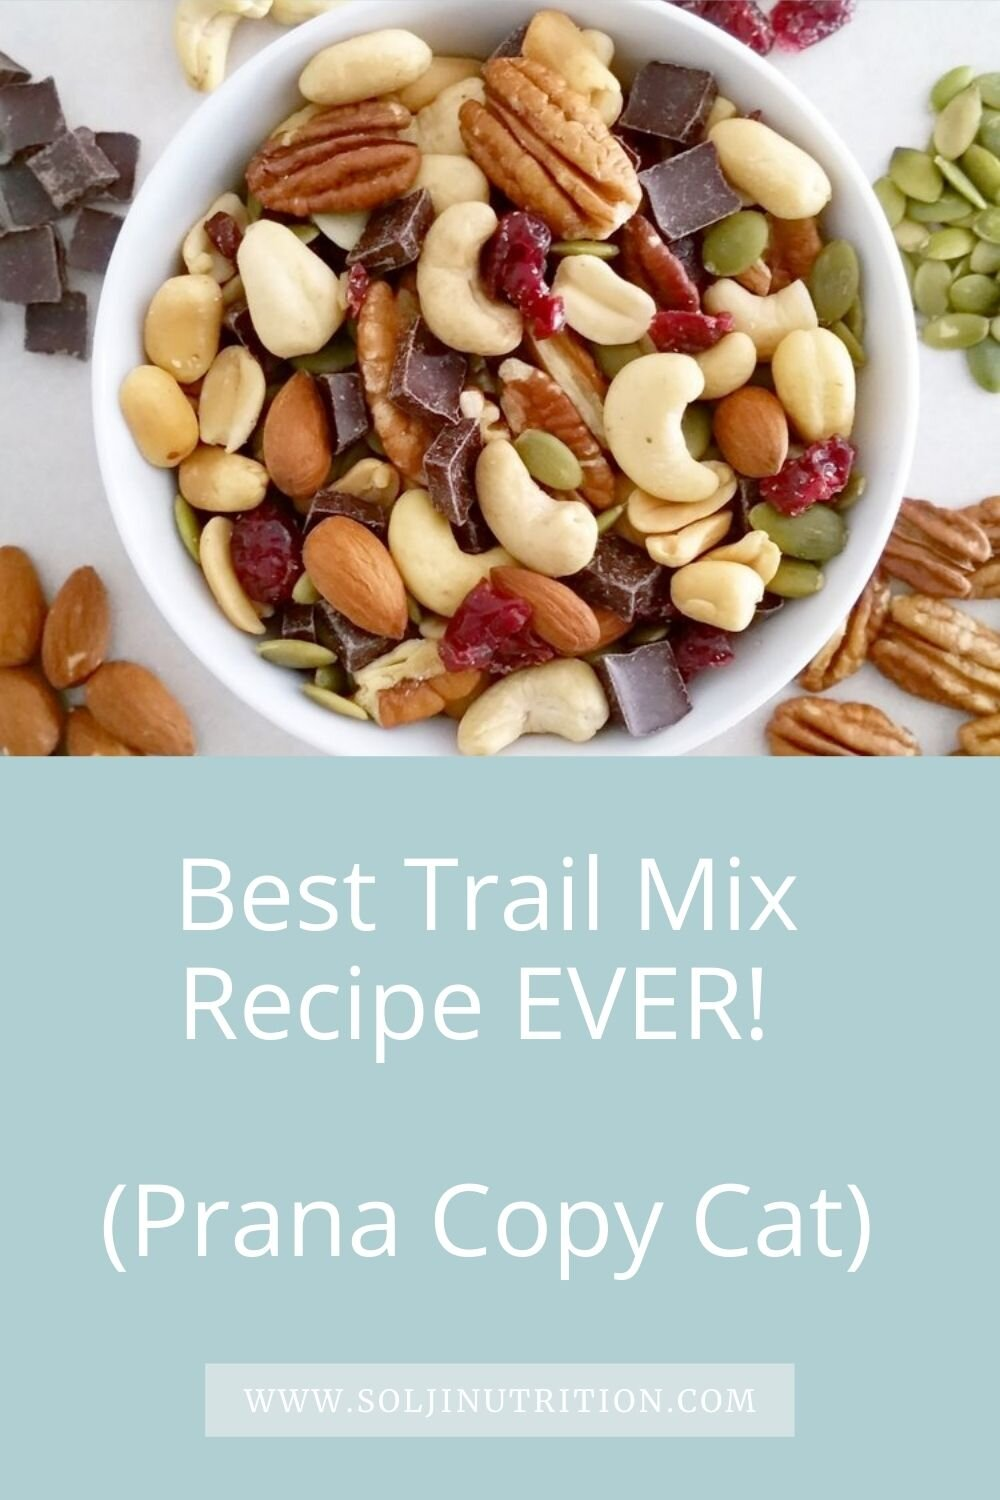 pics Trail Mix: 21 Healthy, Tasty Trail Mix Recipes to Make Yourself